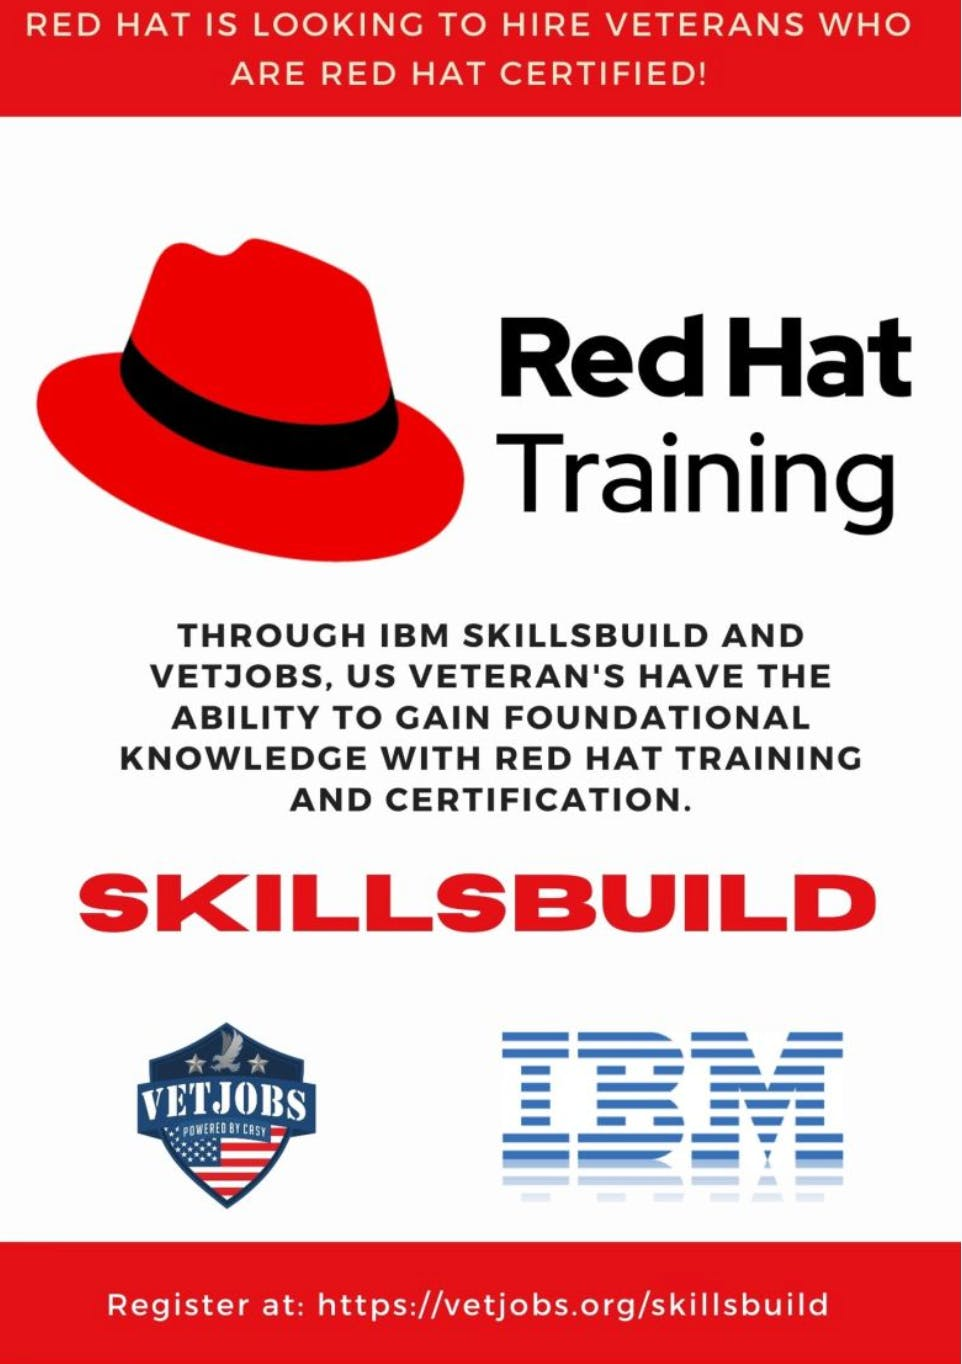 Red Hat is looking to hire veterans that are certified.